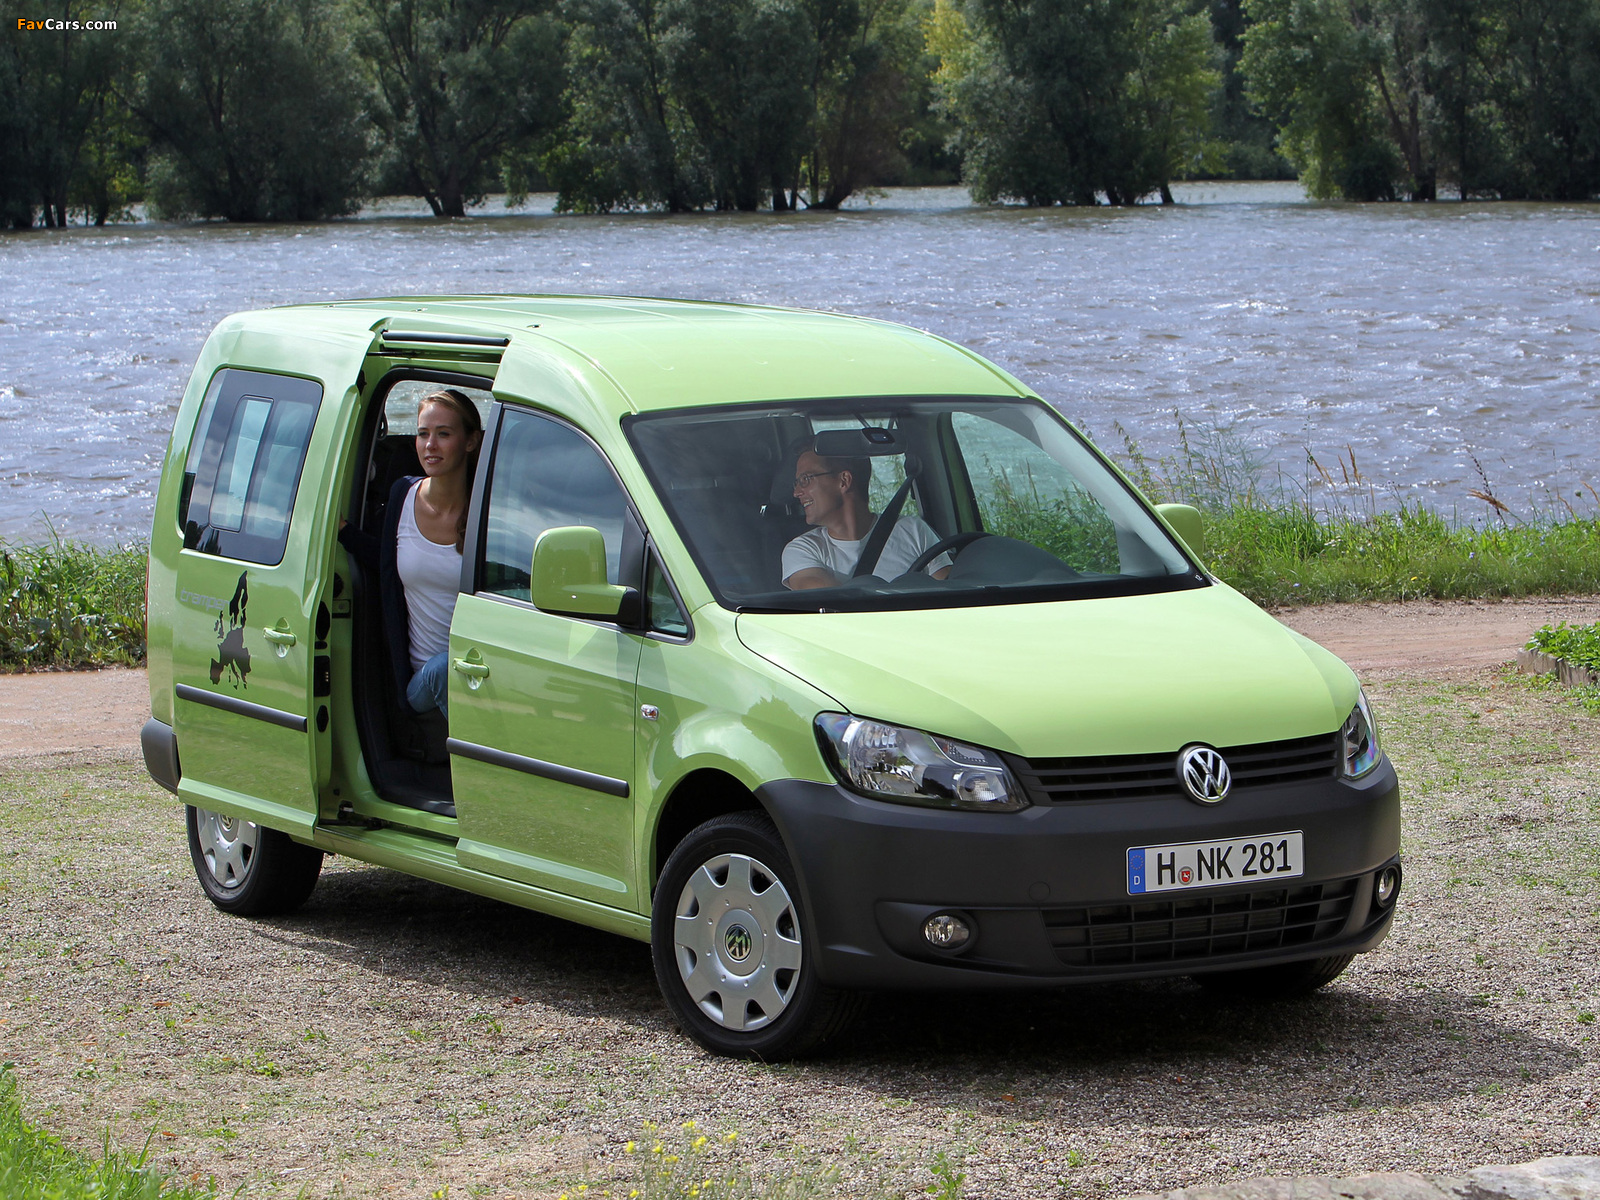 volkswagen caddy tramper maxi type 2k 2010 wallpapers. Black Bedroom Furniture Sets. Home Design Ideas